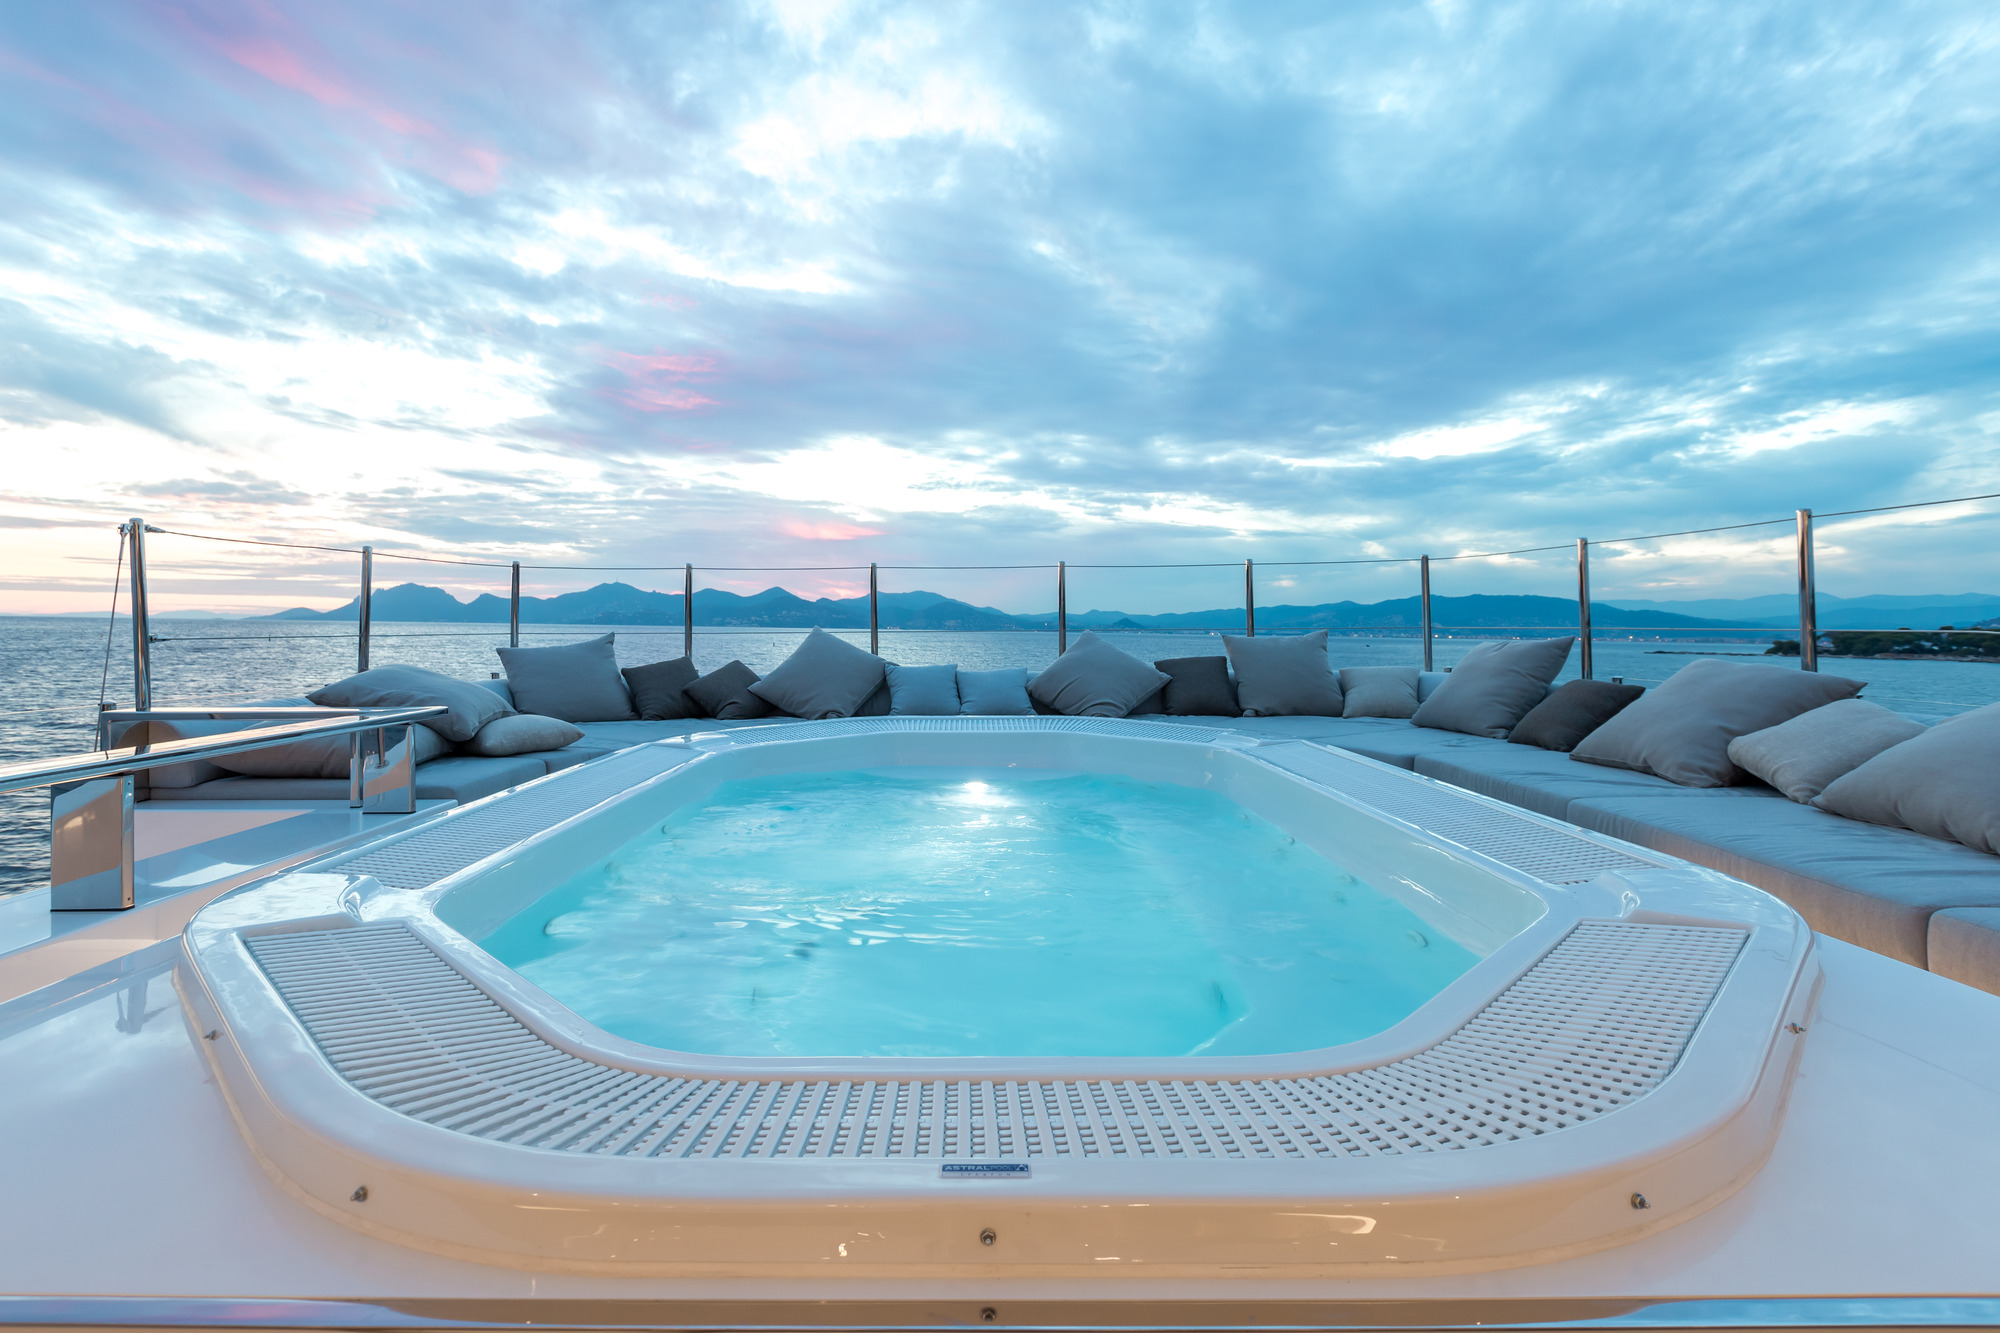 Jacuzzi Pool Equipment Reviews Jacuzzi Pool Copy Yacht Charter And Superyacht News